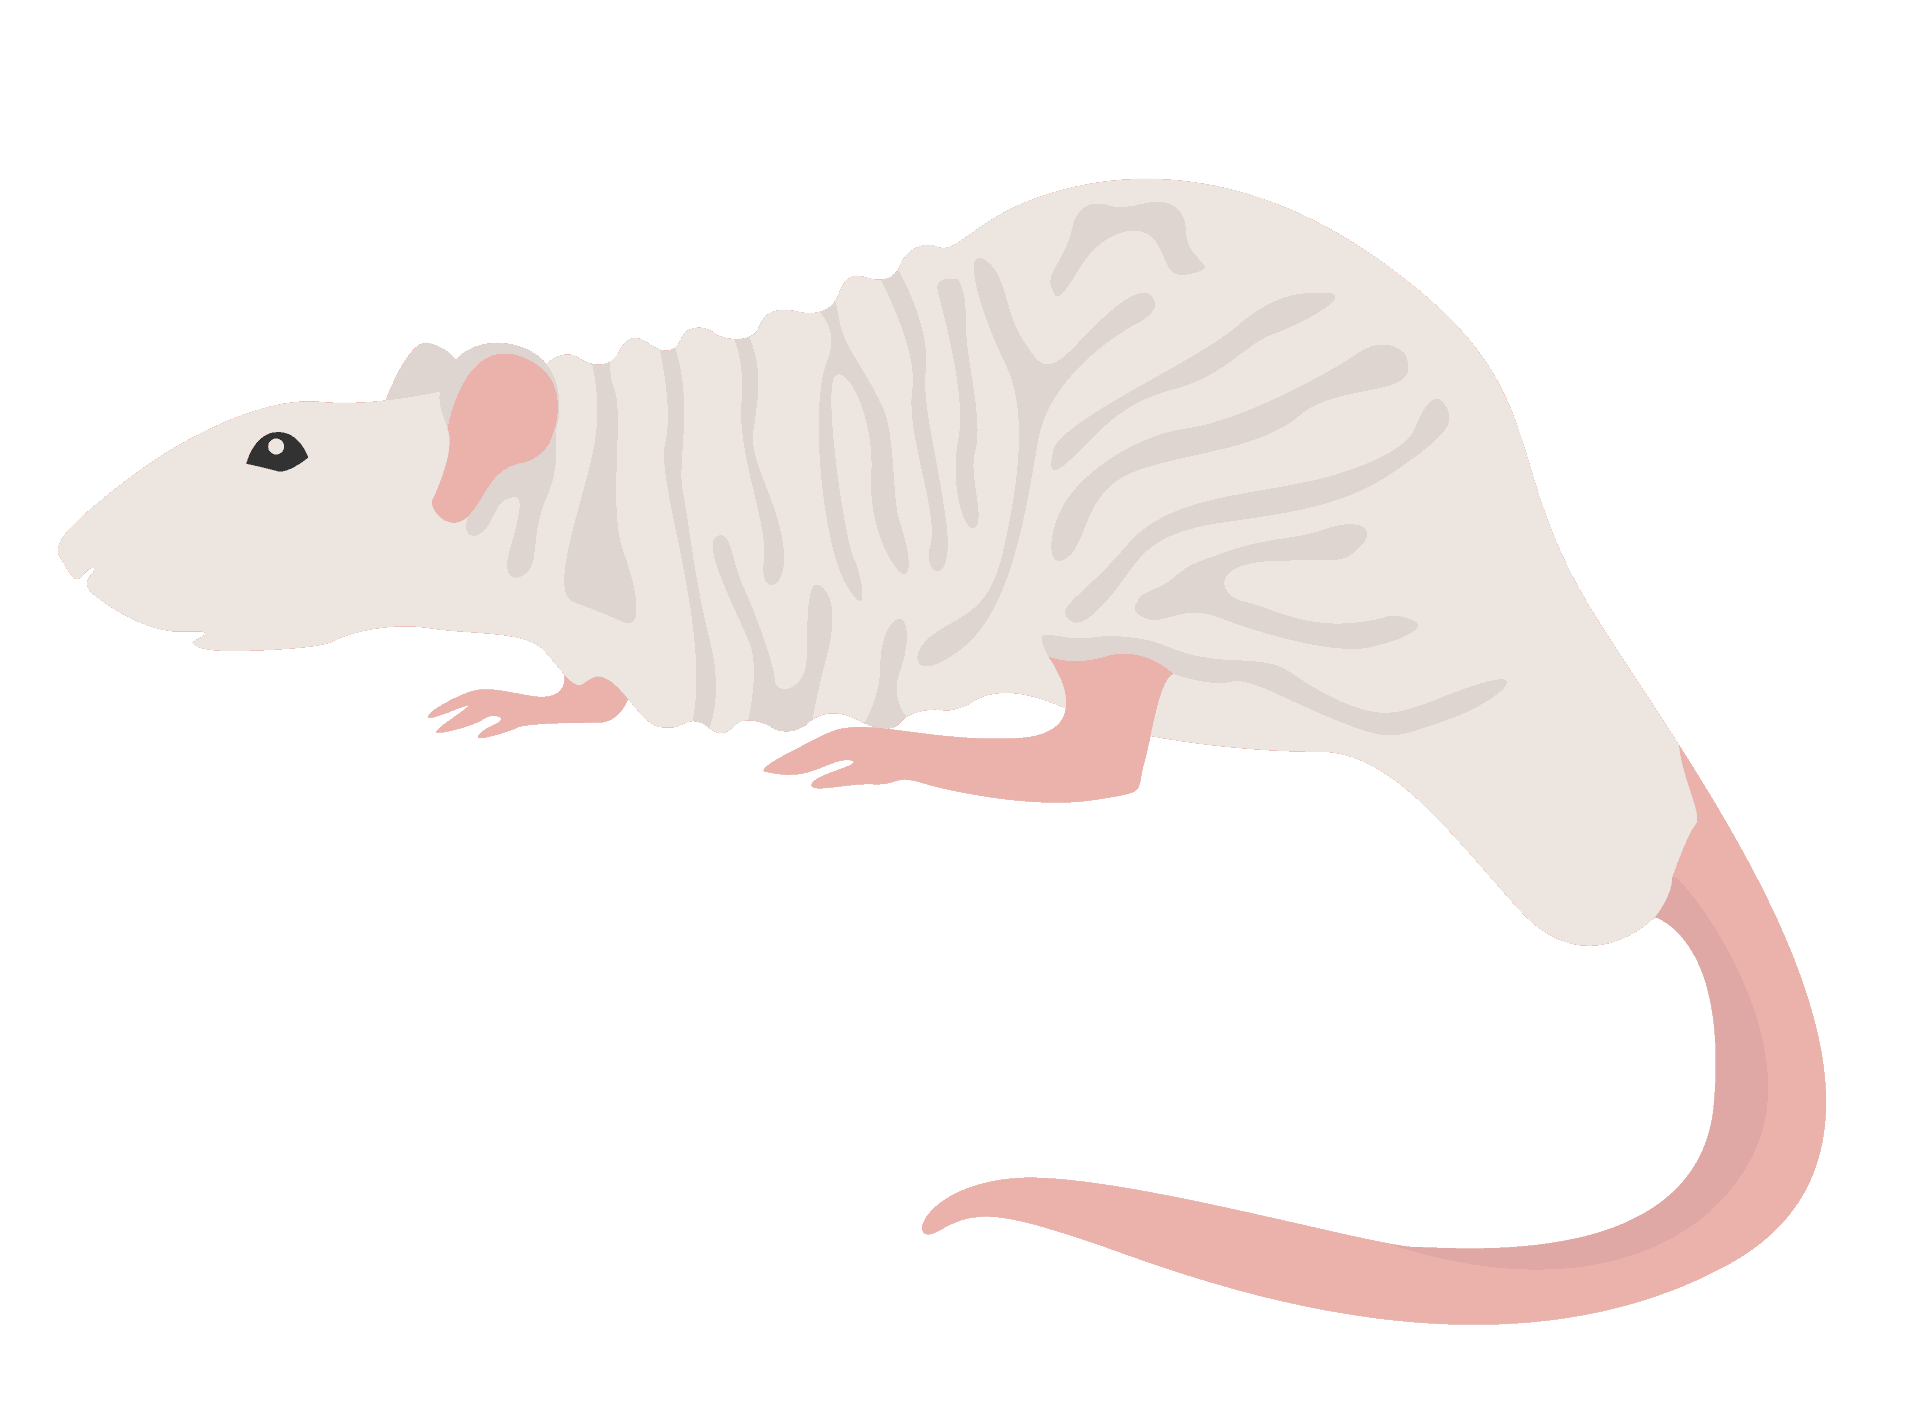 Mice strains in respiratory research